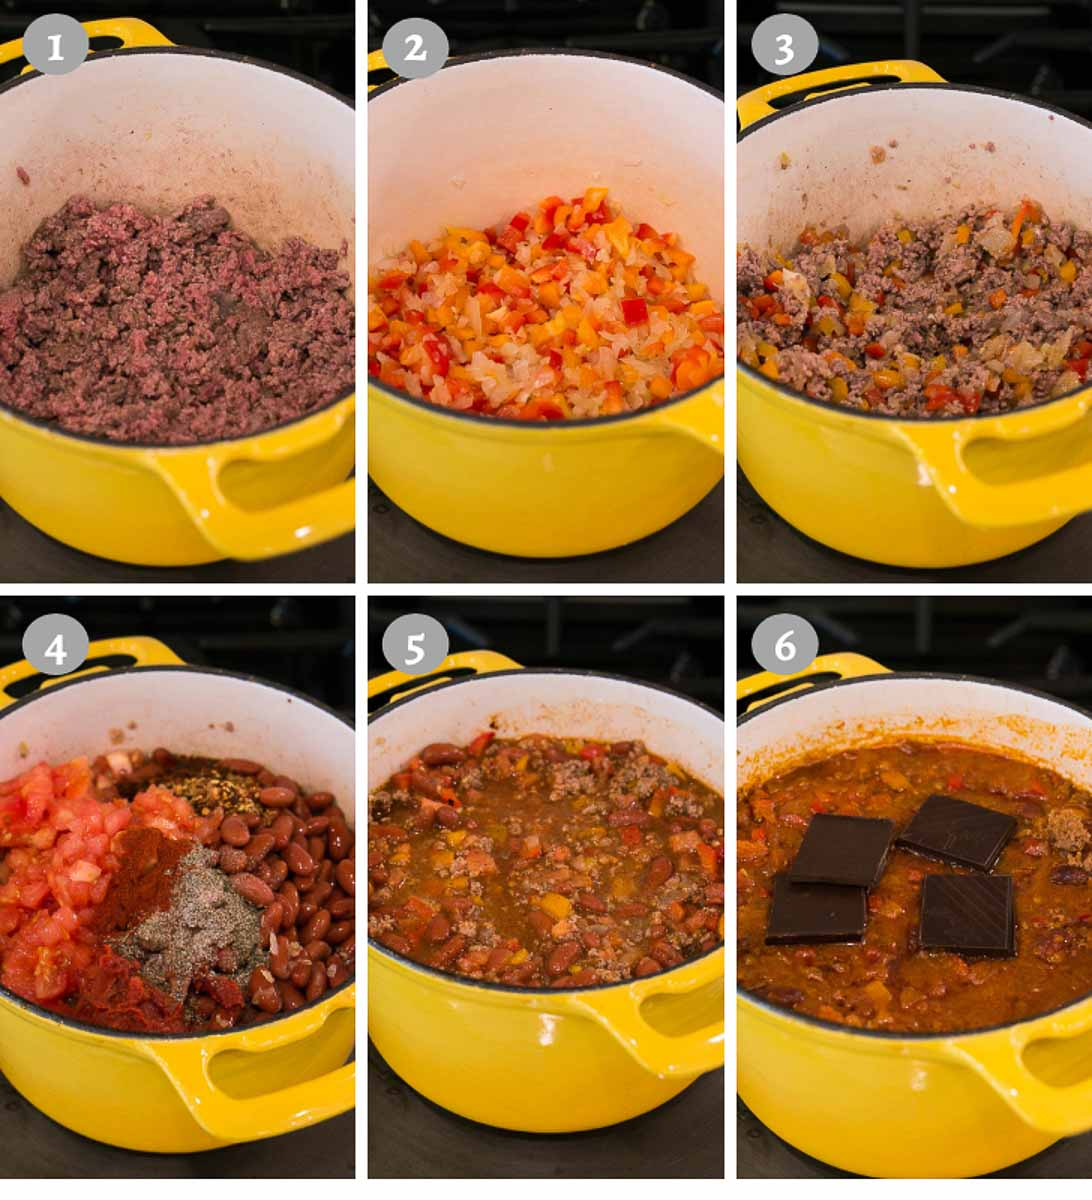 making the best chili recipe - process shots of each step